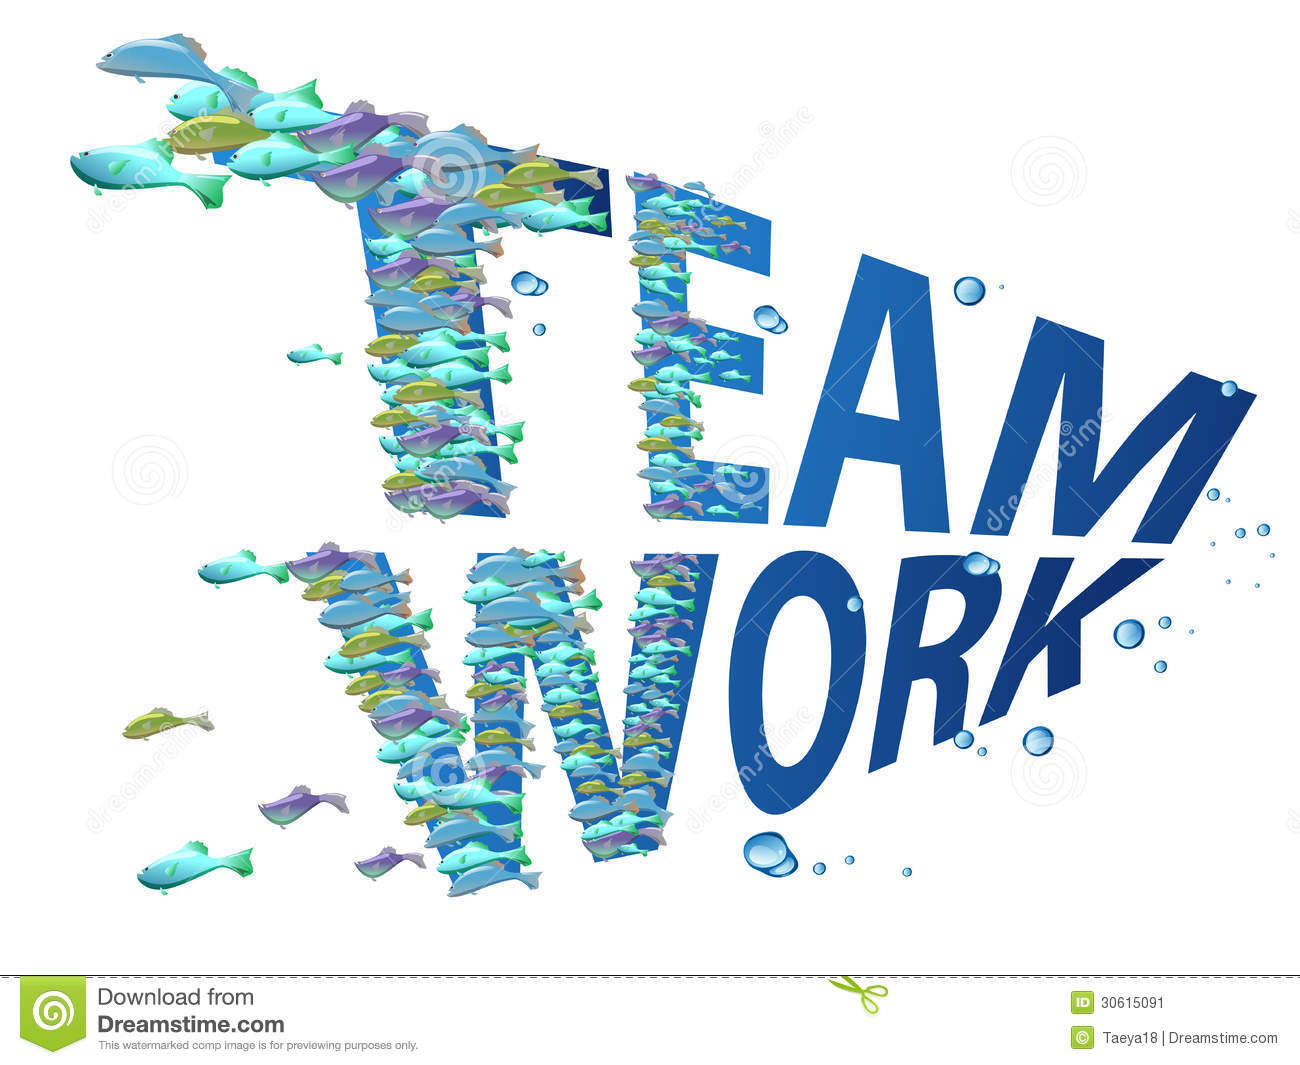 Fish swim together in group of teamwork,business concept.